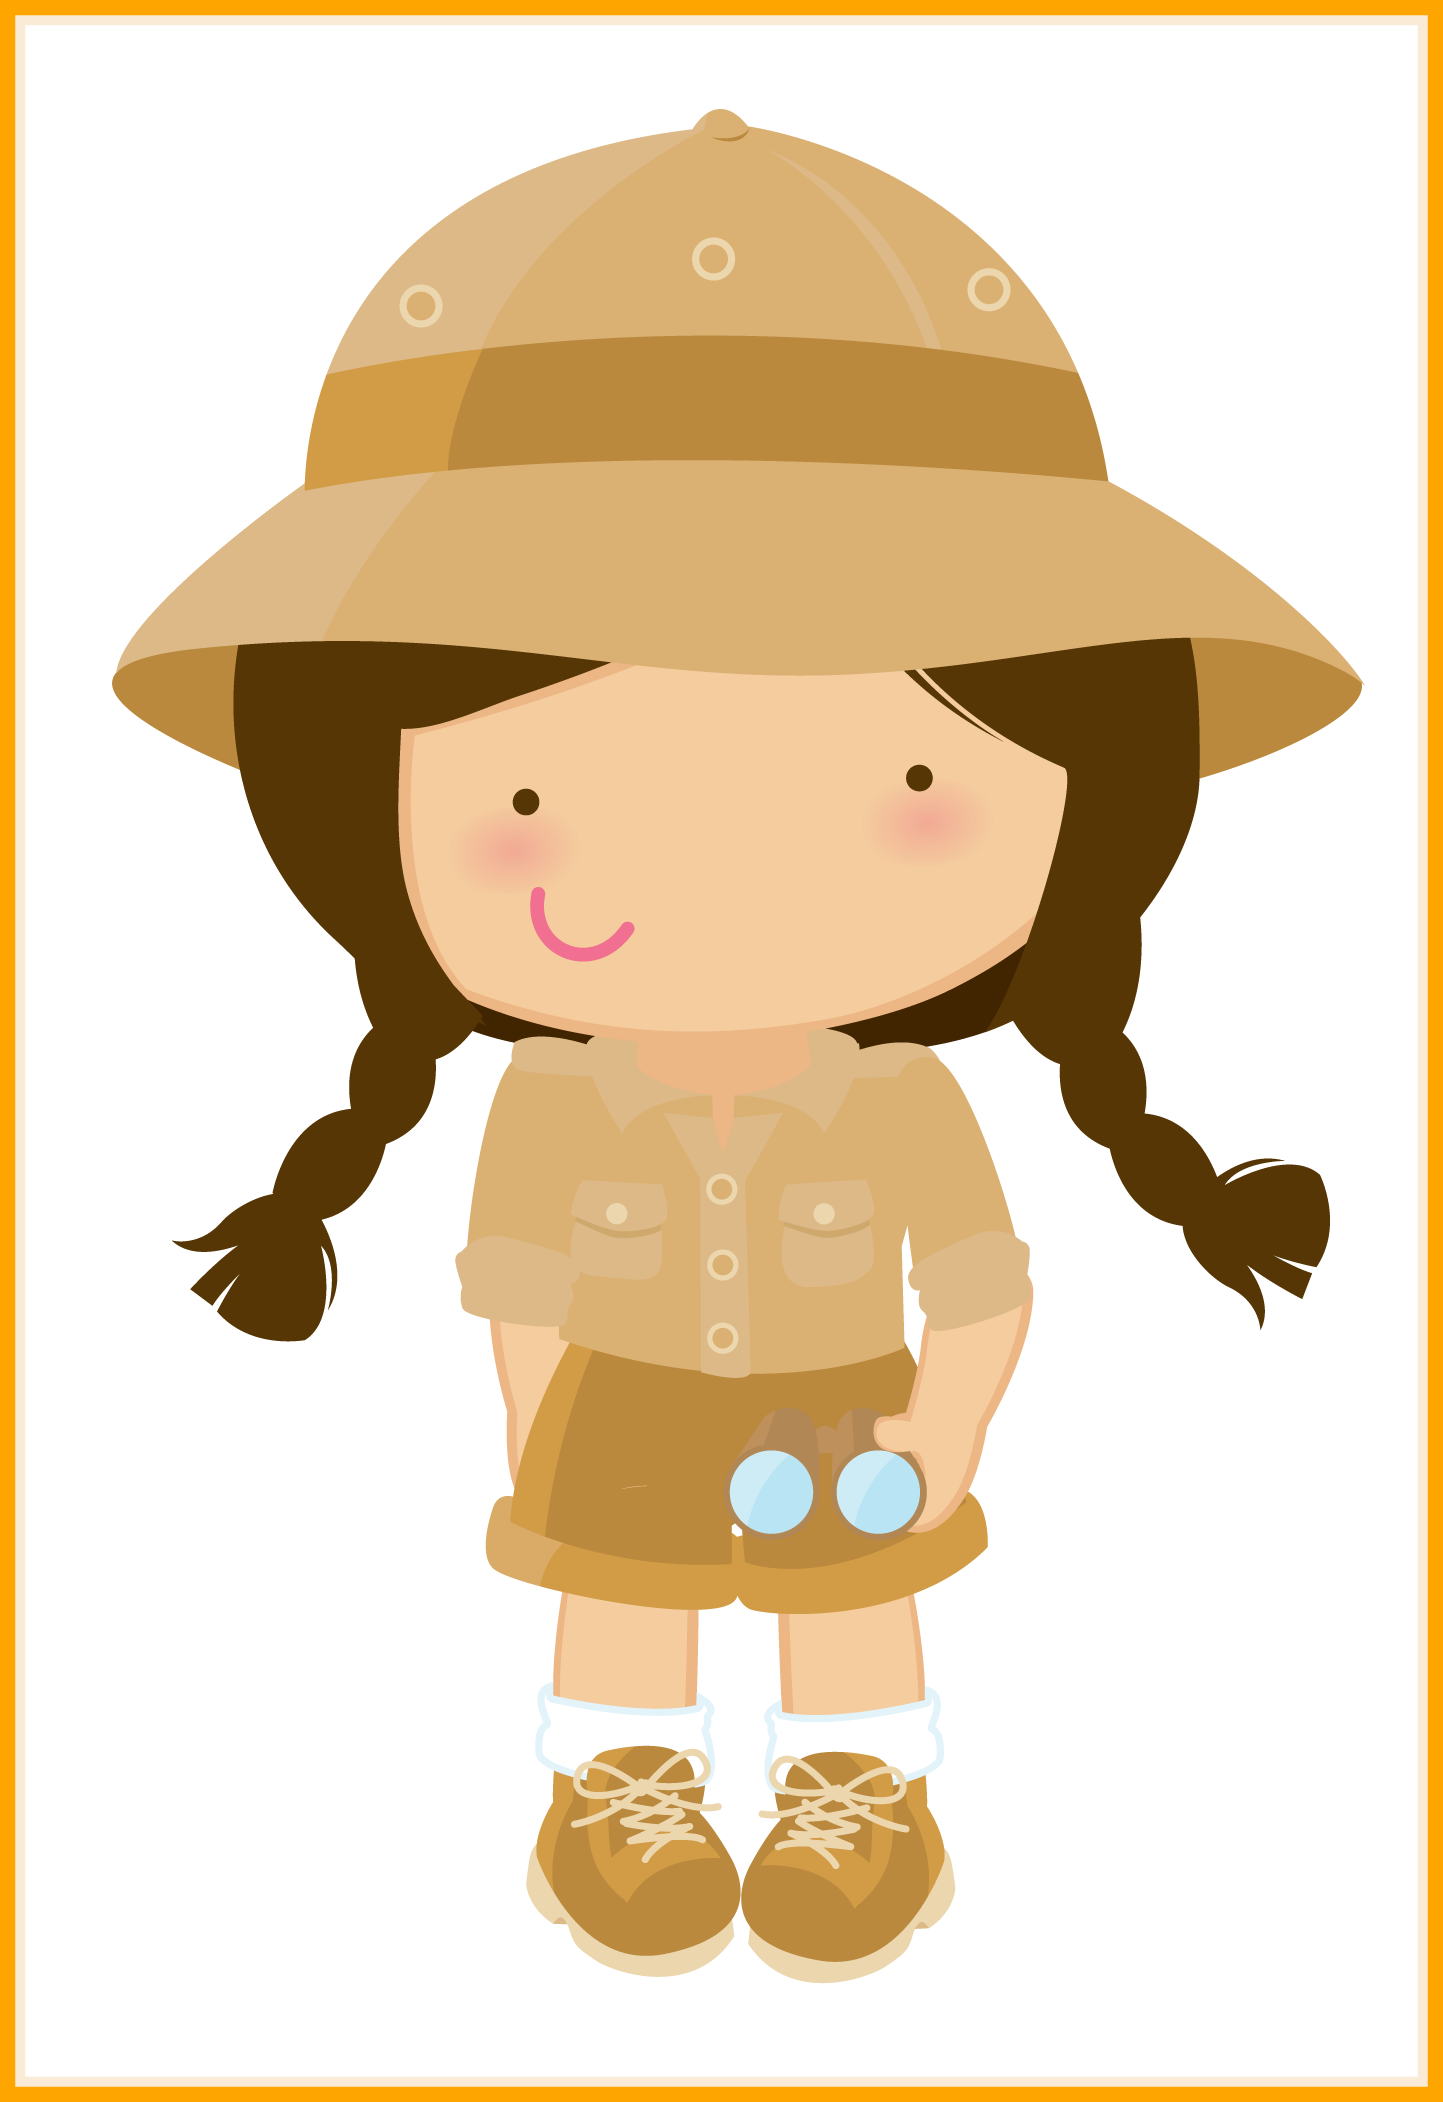 Clothes clipart fashion. The best women professional